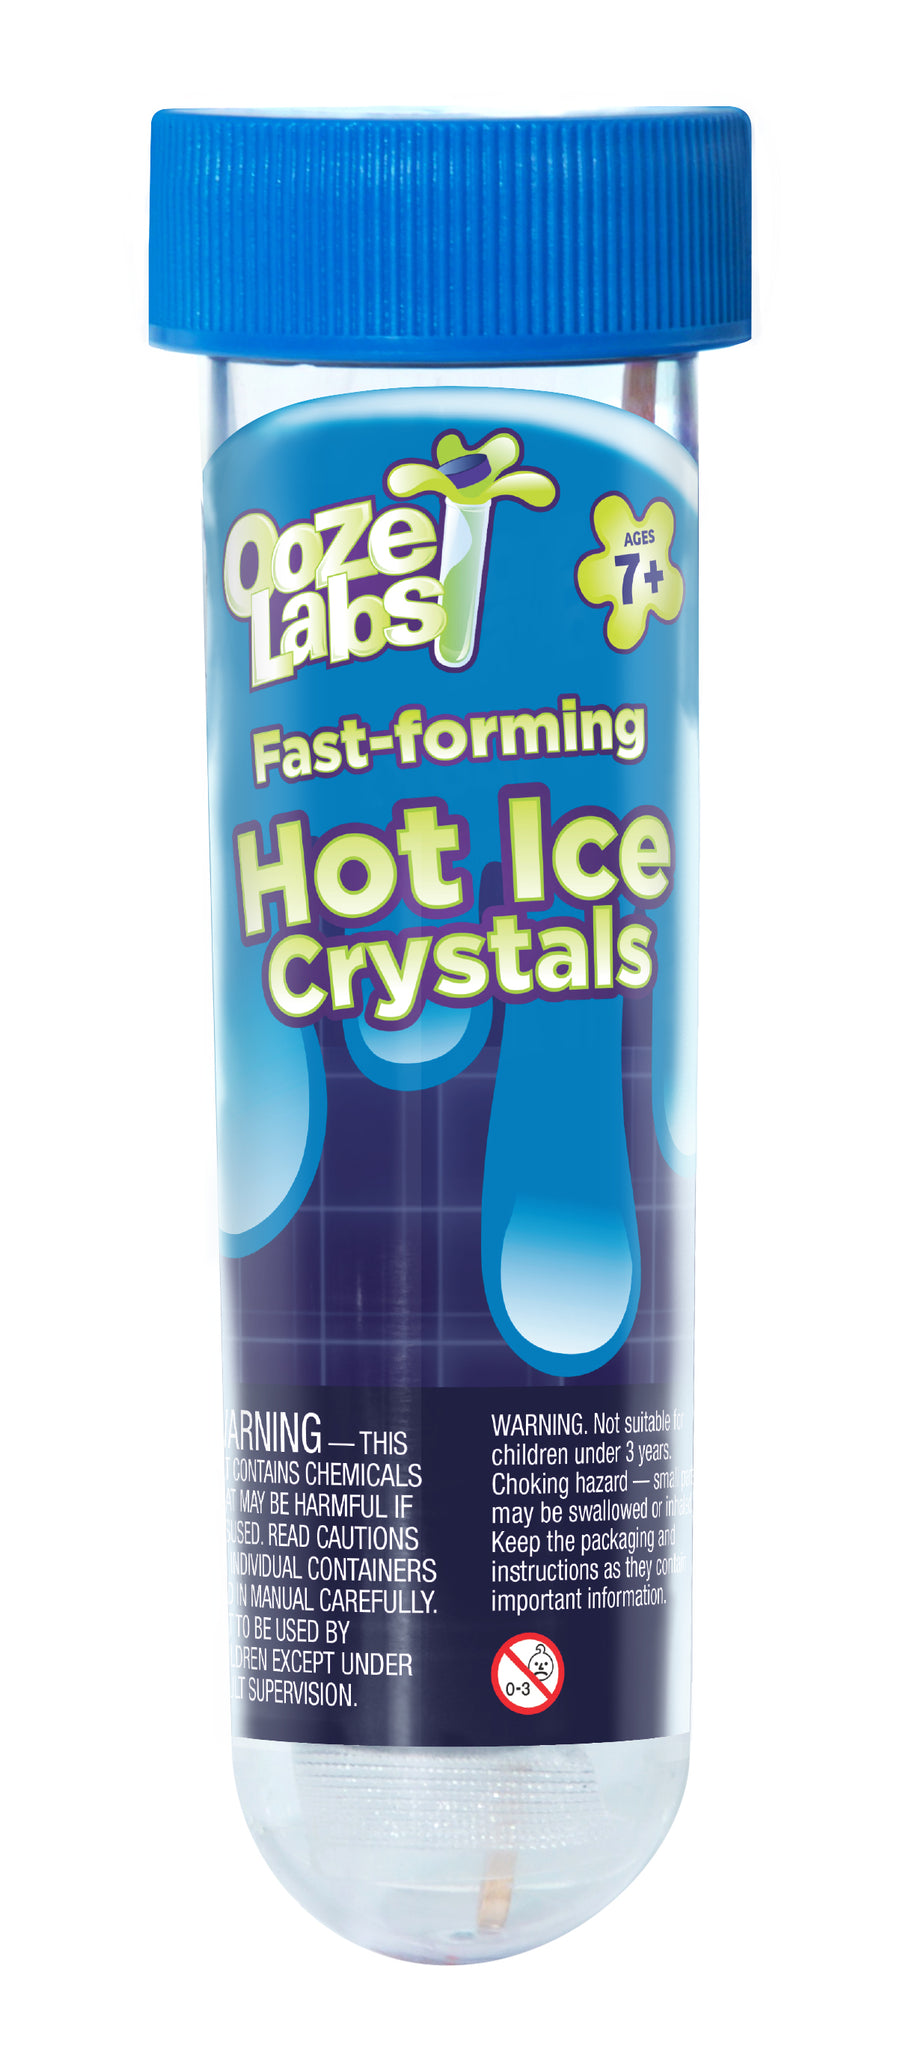 Ooze Lab 2: Hot Ice Crystals